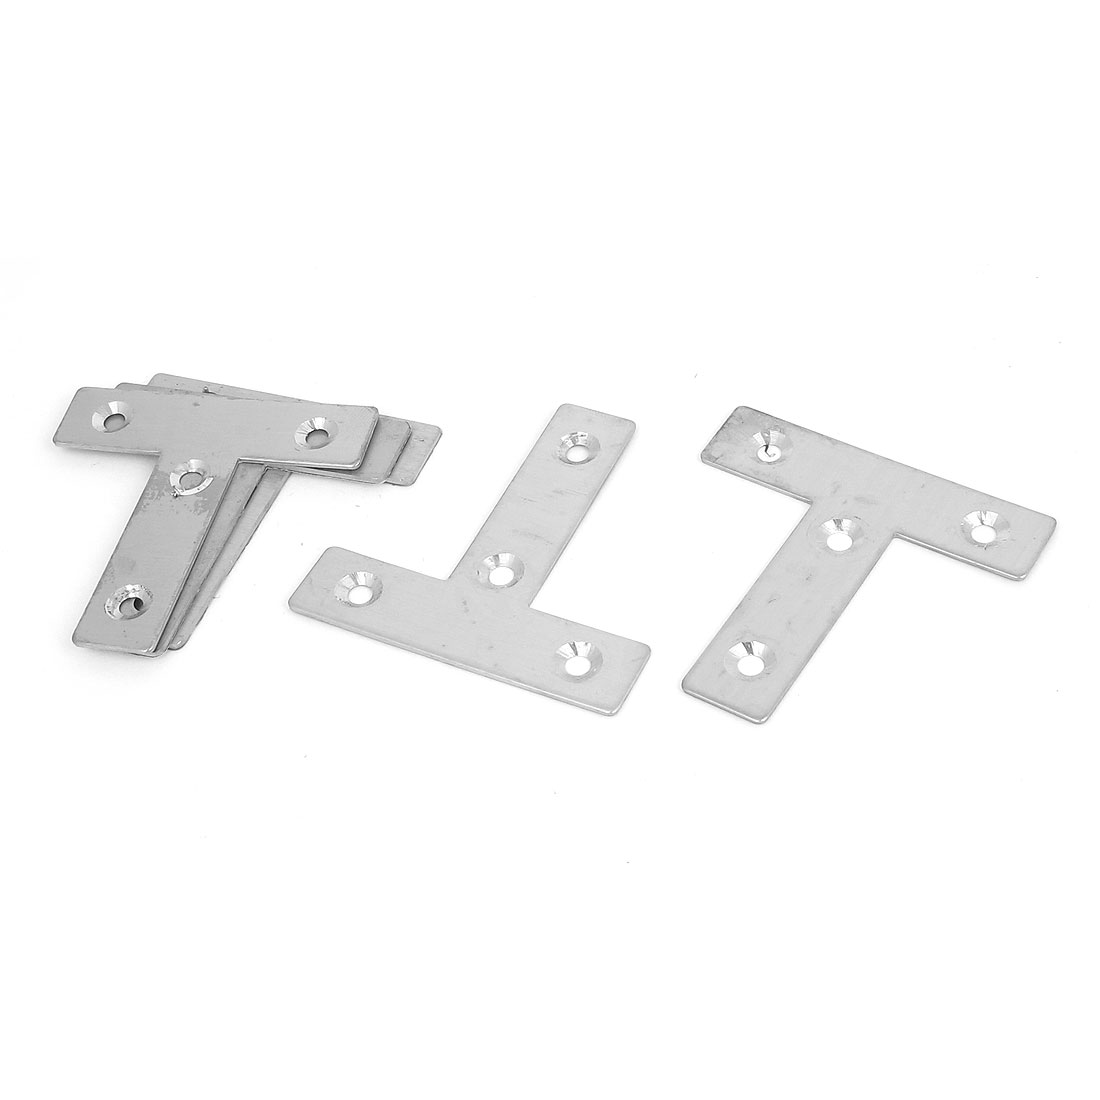 60mmx60mm Flat T Shape Angle Plate Corner Brace Repair Brackets 5PCS